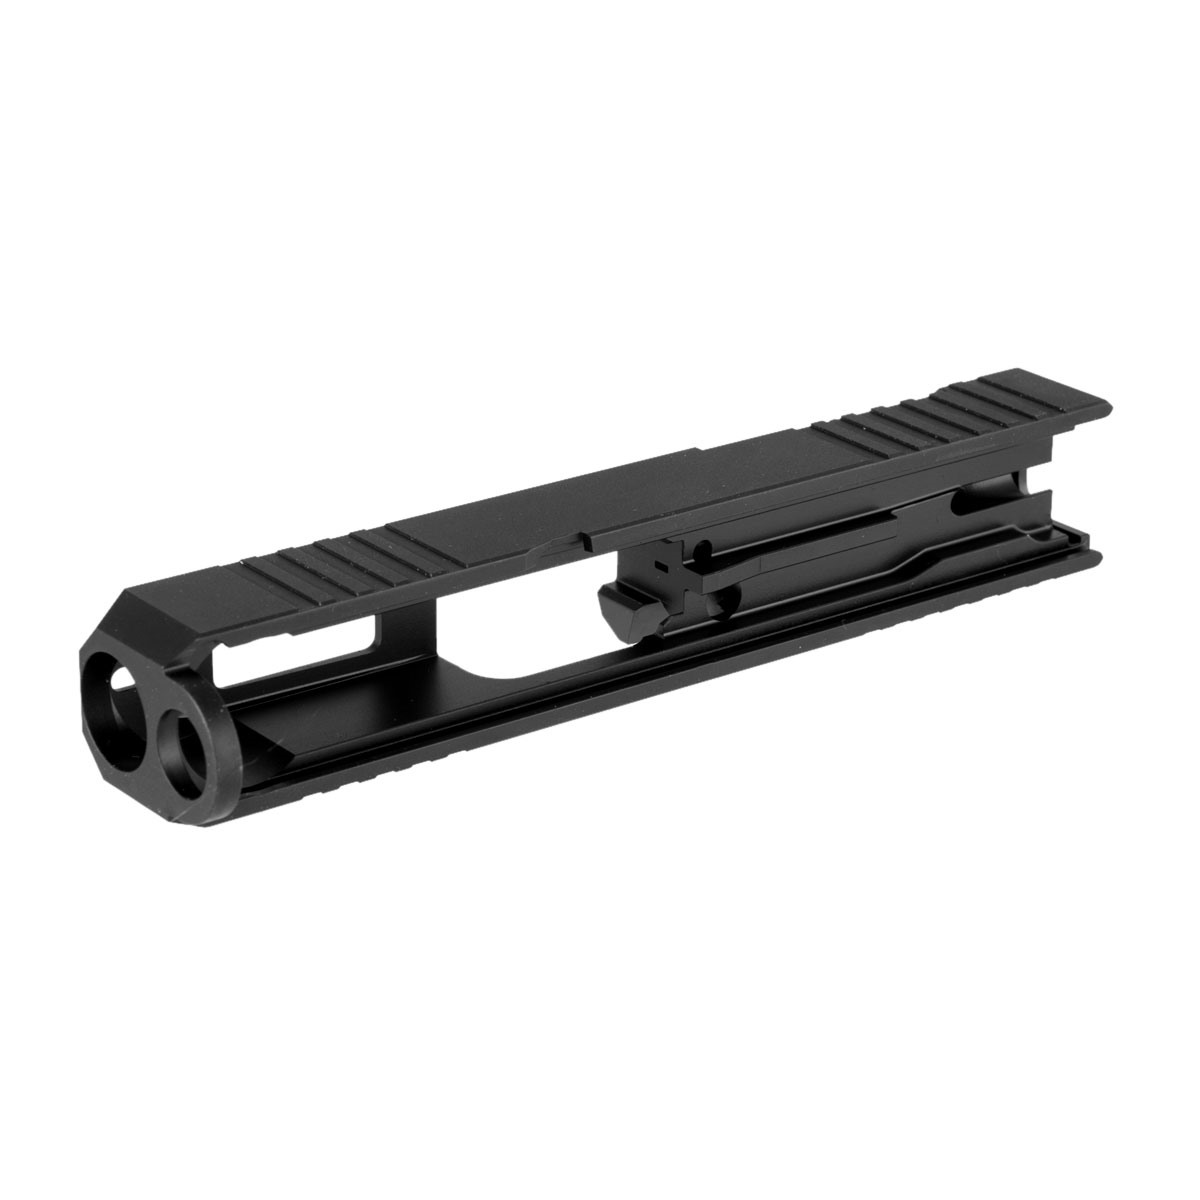 RMR Slide +Window for Glock™ 26 Gen 1-4, SS Nitride